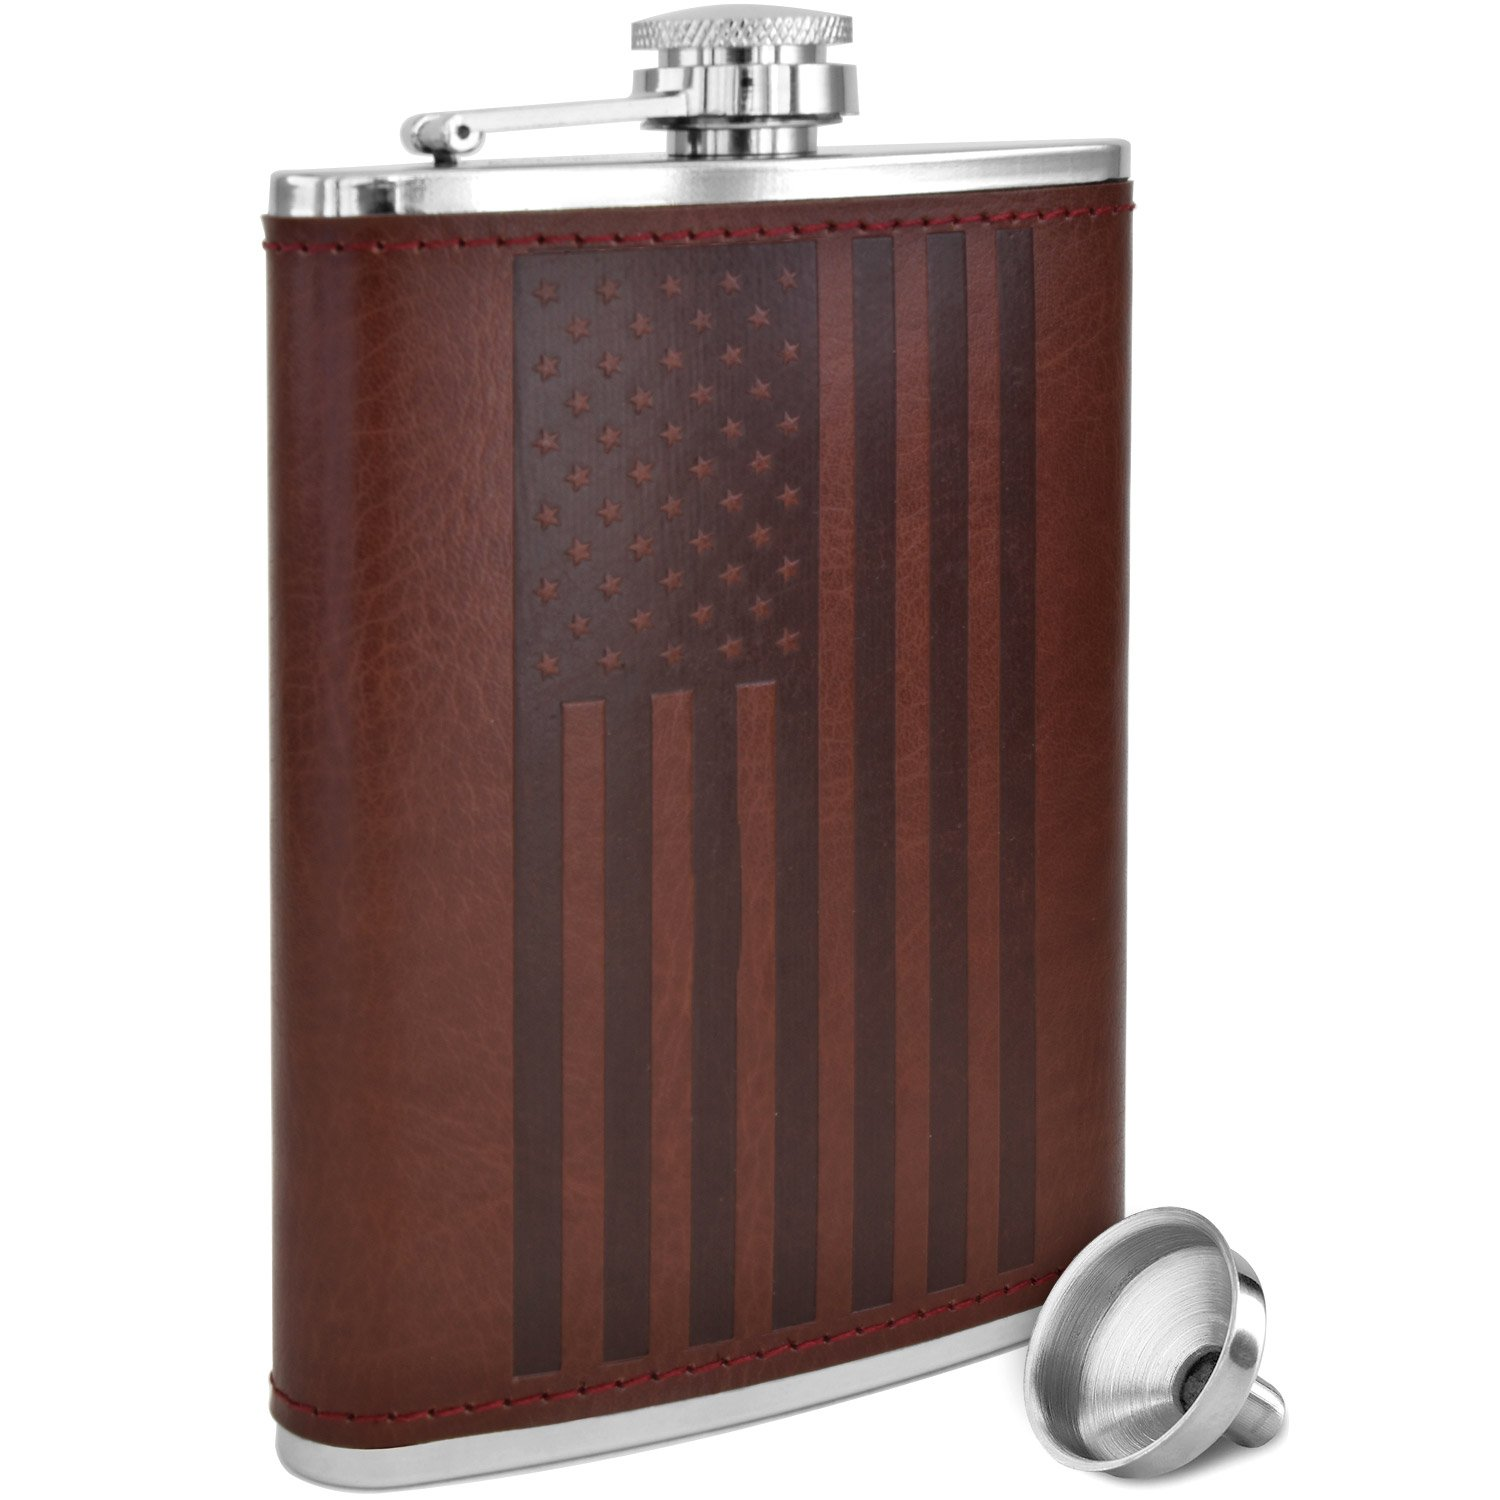 American Flag Flask - 8 oz Premium Soft Touch Leather Wrap | 18/8 304 Highest Food Grade Stainless Steel | Leak Proof Slim Hip Flasks | Classic American Flag Design | Bonus Funnel